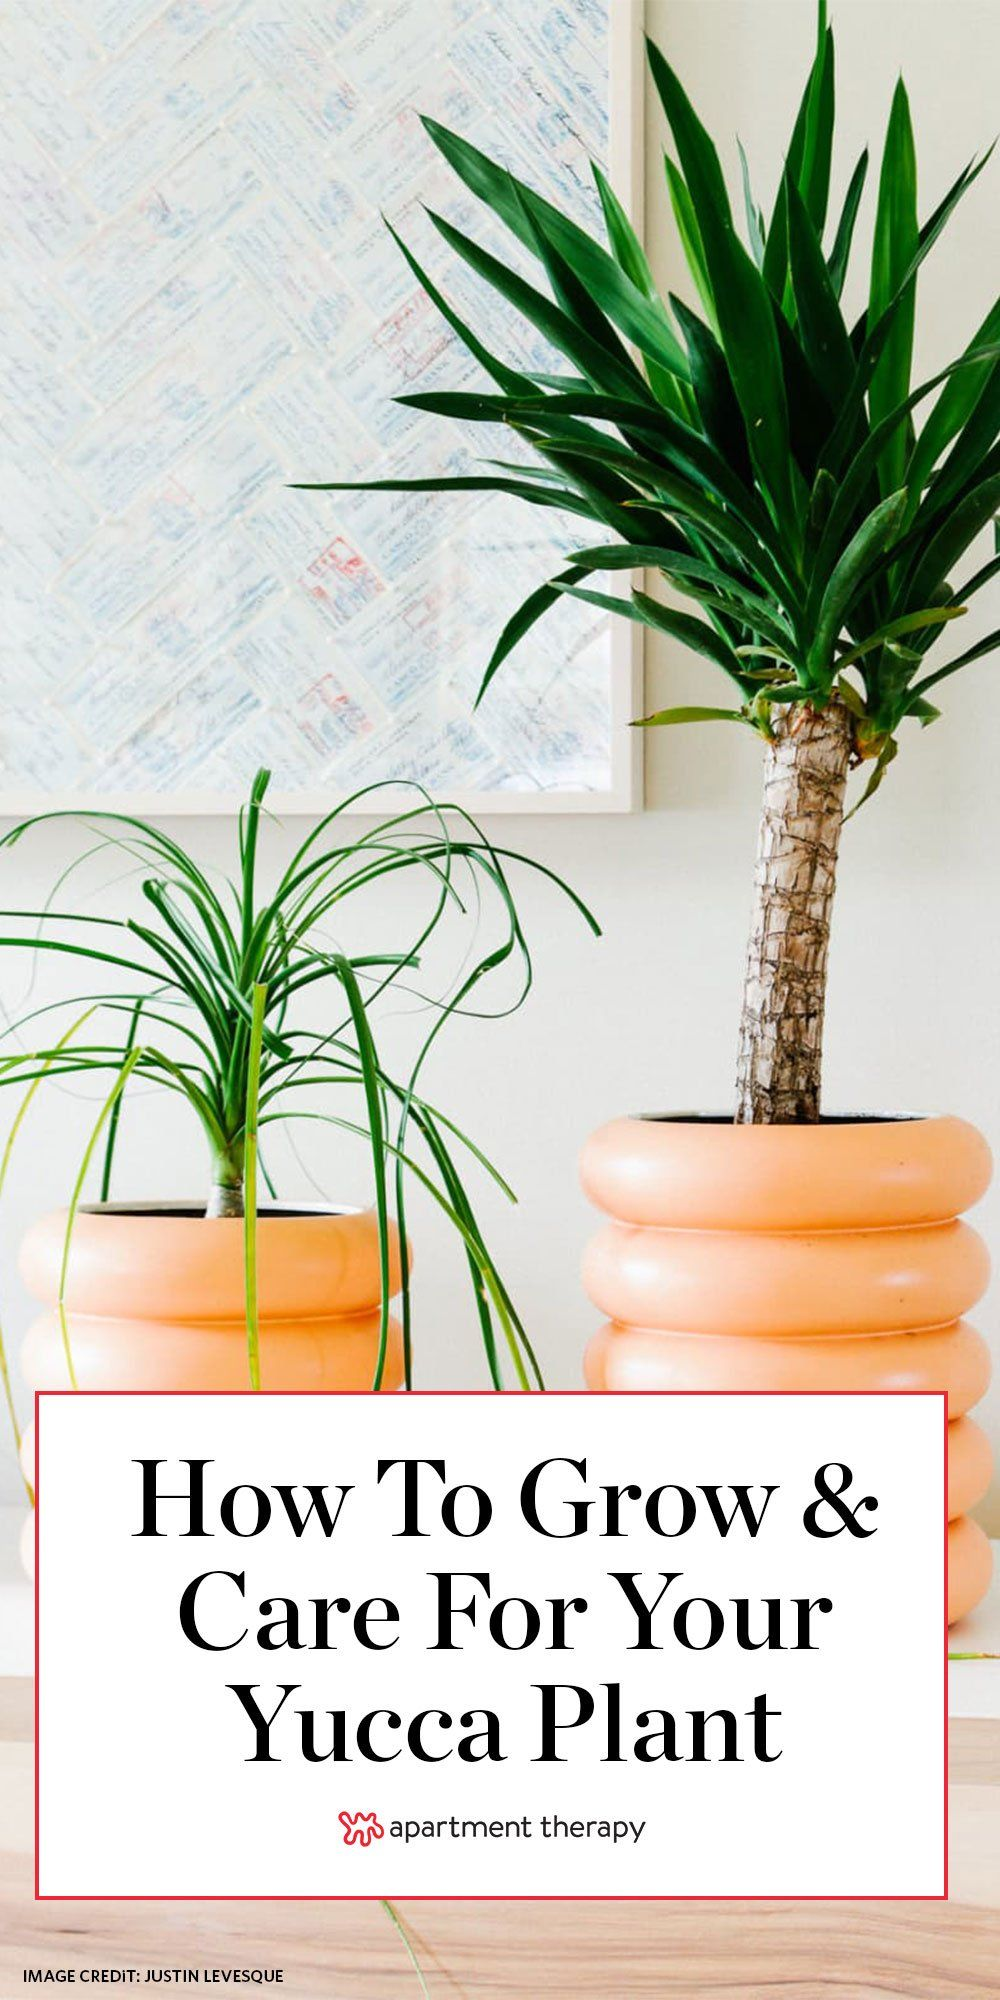 Yucca is the striking and low-maintenance plant you've been waiting for. Here's how to care for them. #yucca #yuccaplant #houseplants #lowmaintenanceplants #easyhouseplants #plantcare #planttips #plantcaretips #indoorplants